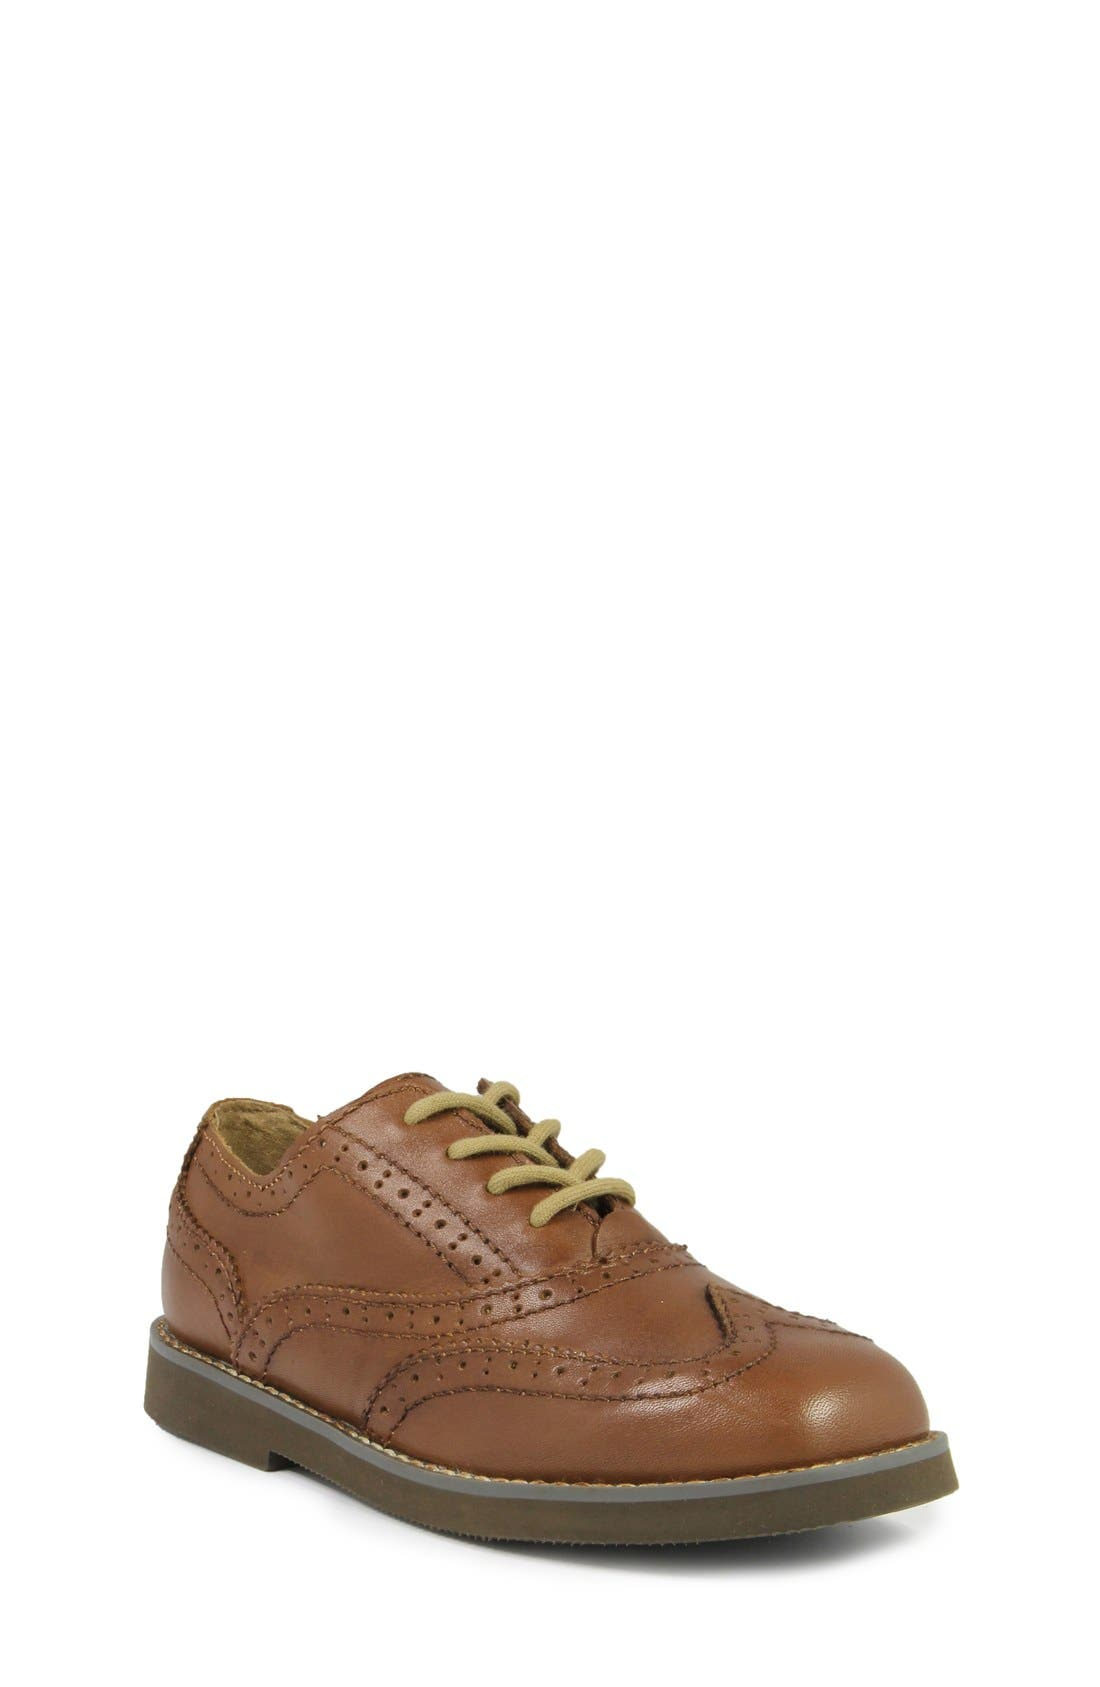 Florsheim 'Bucktown' Wingtip (Toddler, Little Kid & Big Kid)